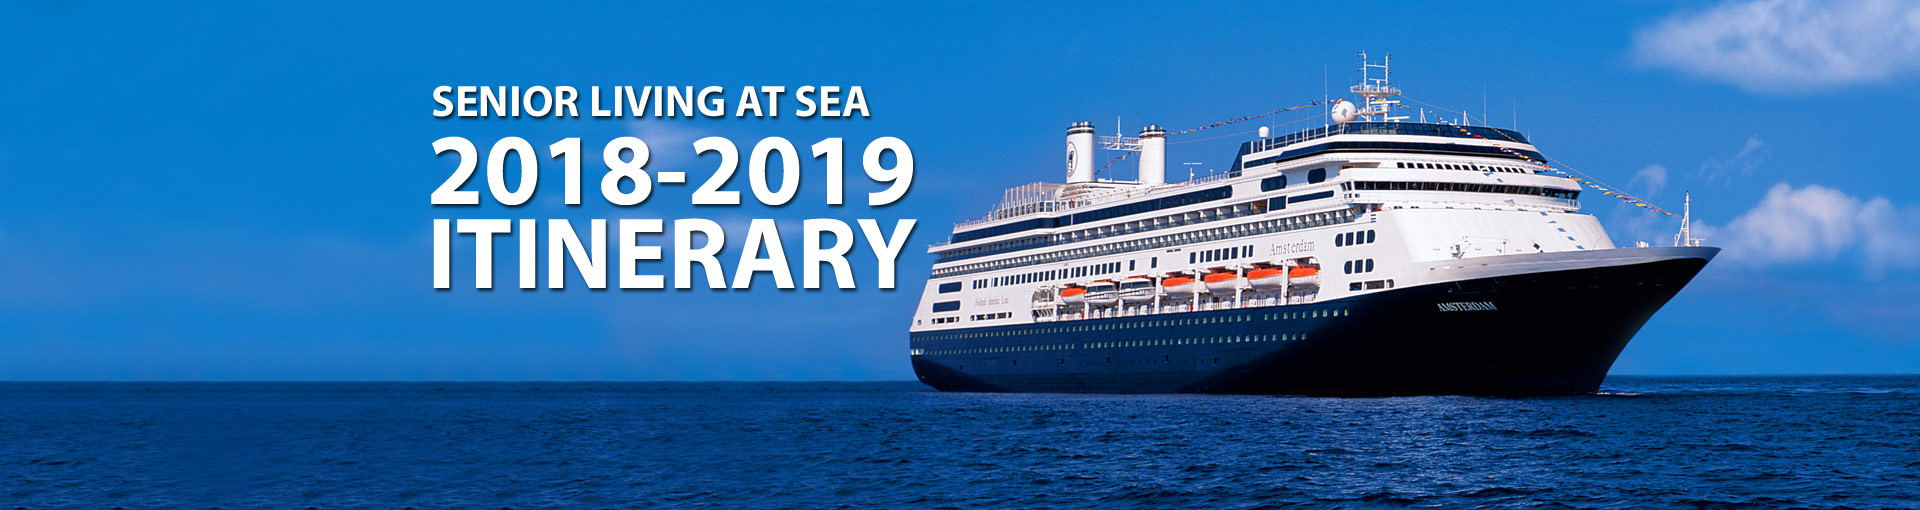 Senior Living at Sea Itinerary - ms Amsterdam